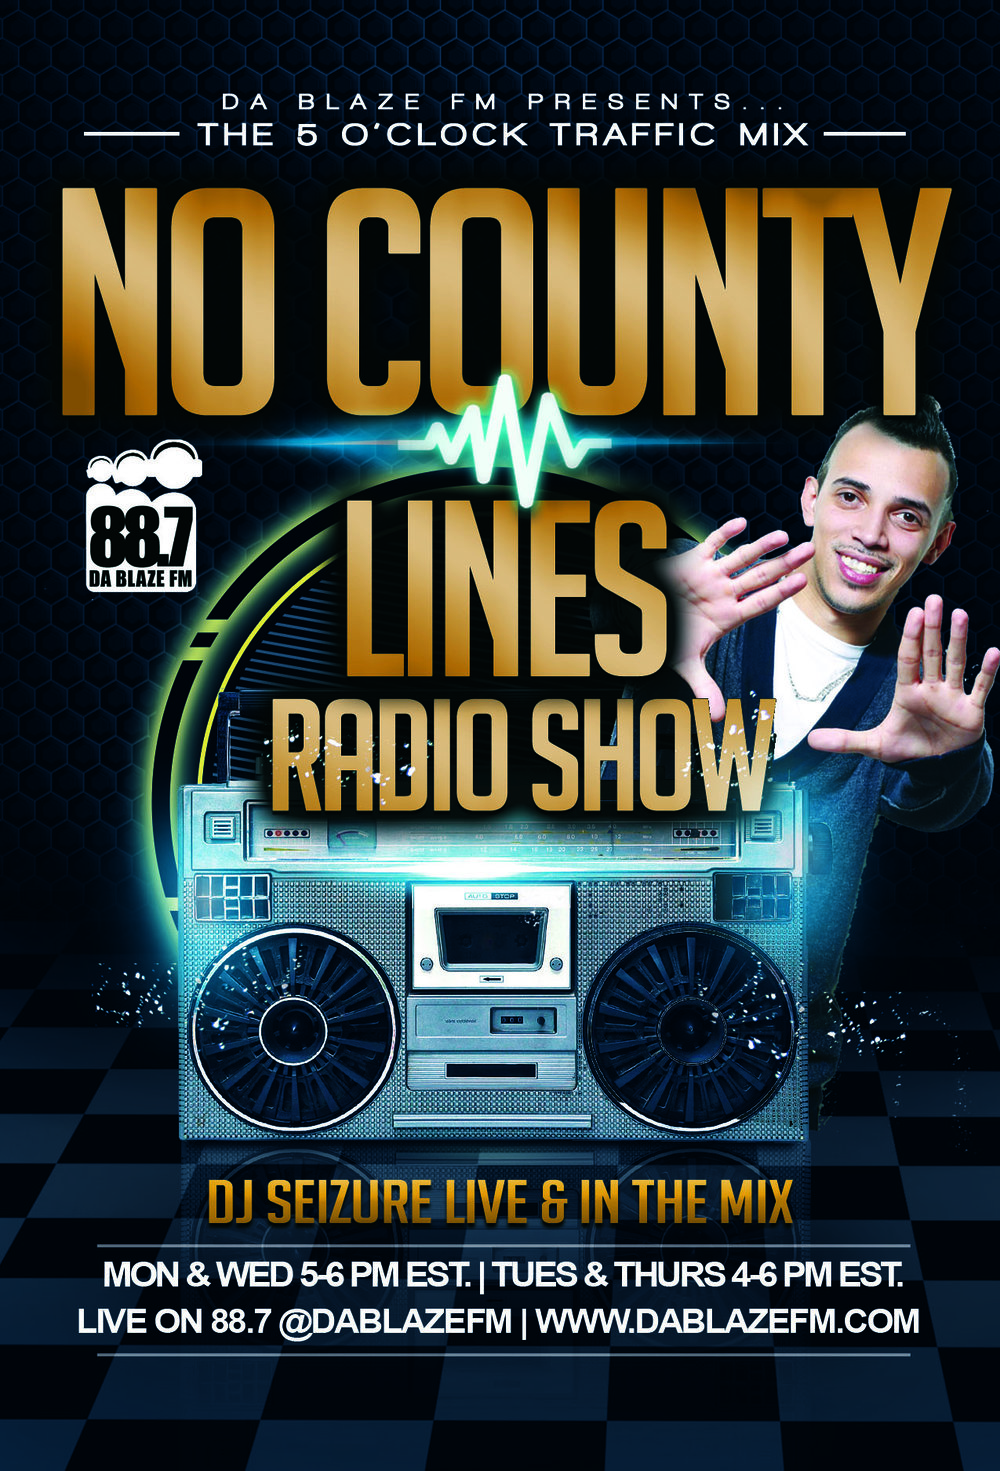 Tune in weekdays Mondays - Fridays 5-6 PM to the No County Lines Traffic Mix on 88.7 FM, Da Blaze FM! Tune in below!